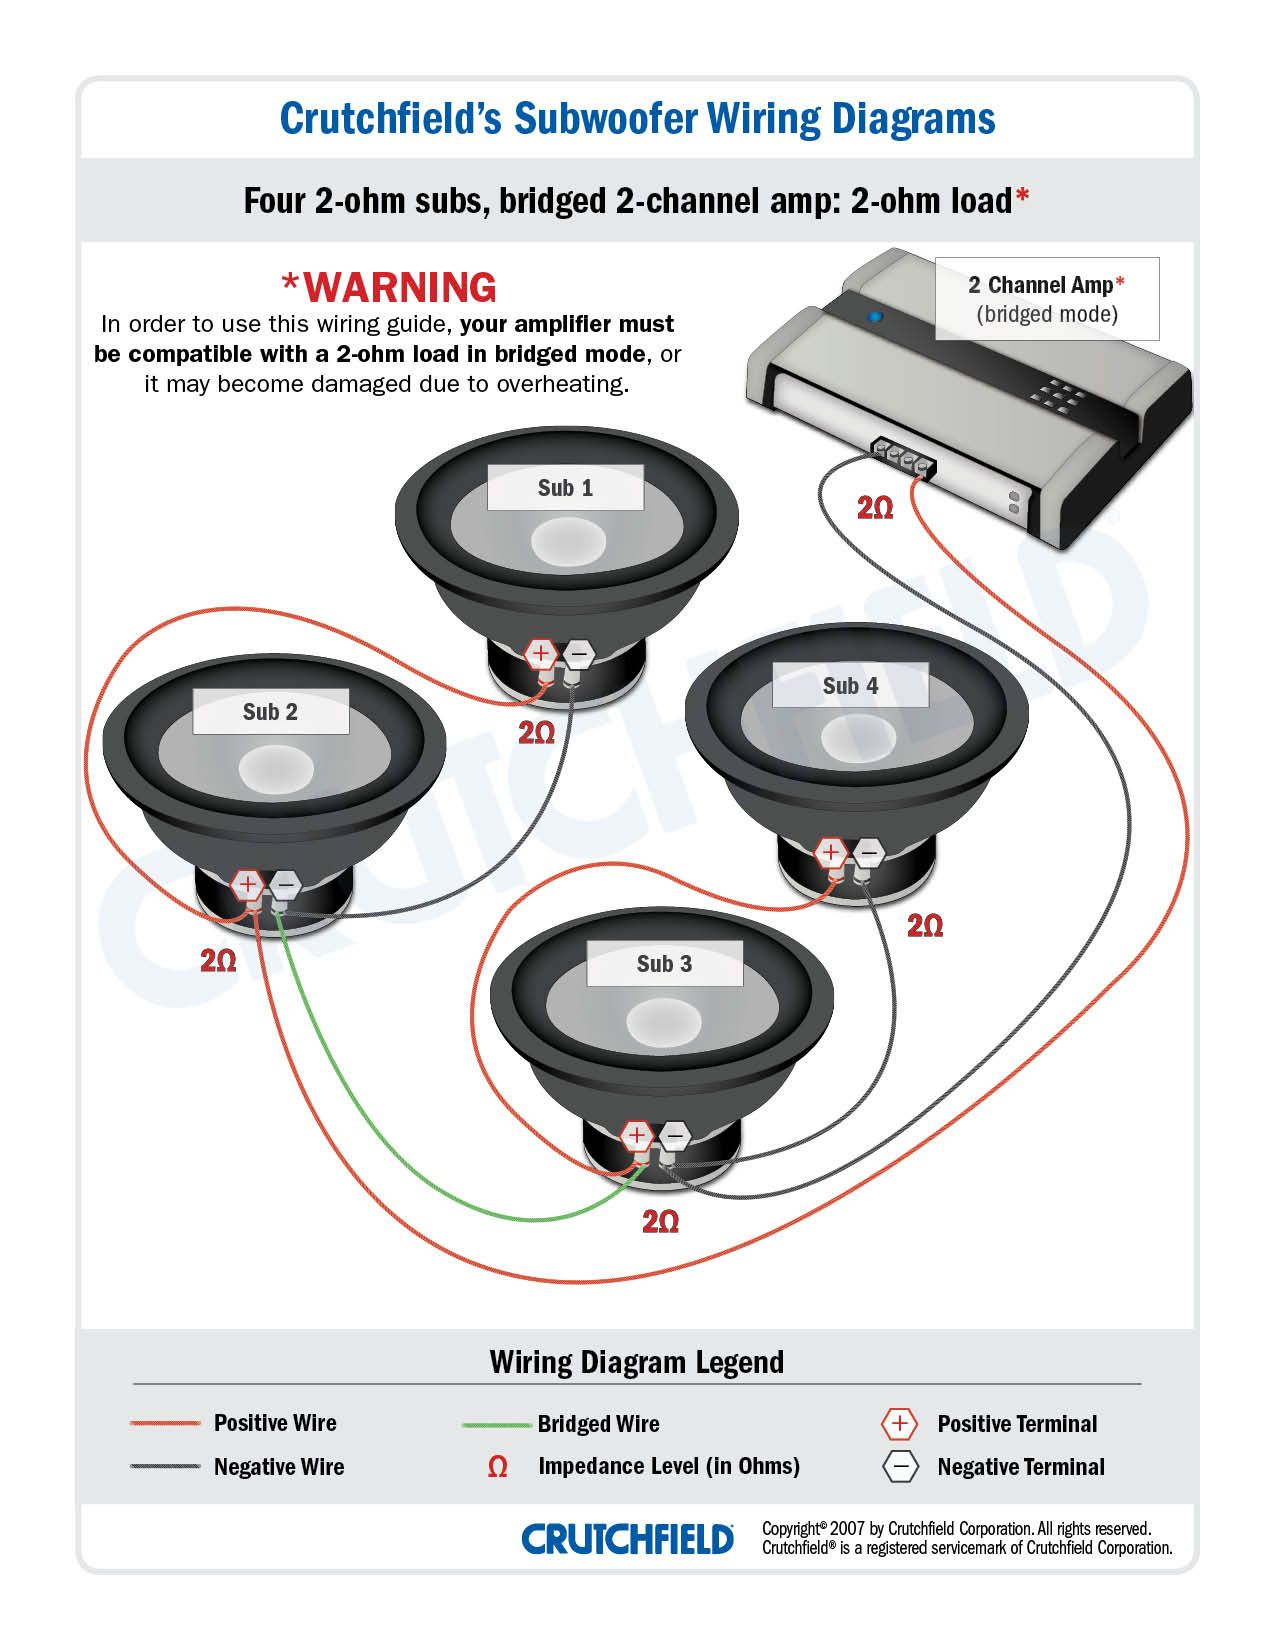 Top 10 Subwoofer Wiring Diagram Free Download 4 SVC 2 Ohm 2 Ch Low